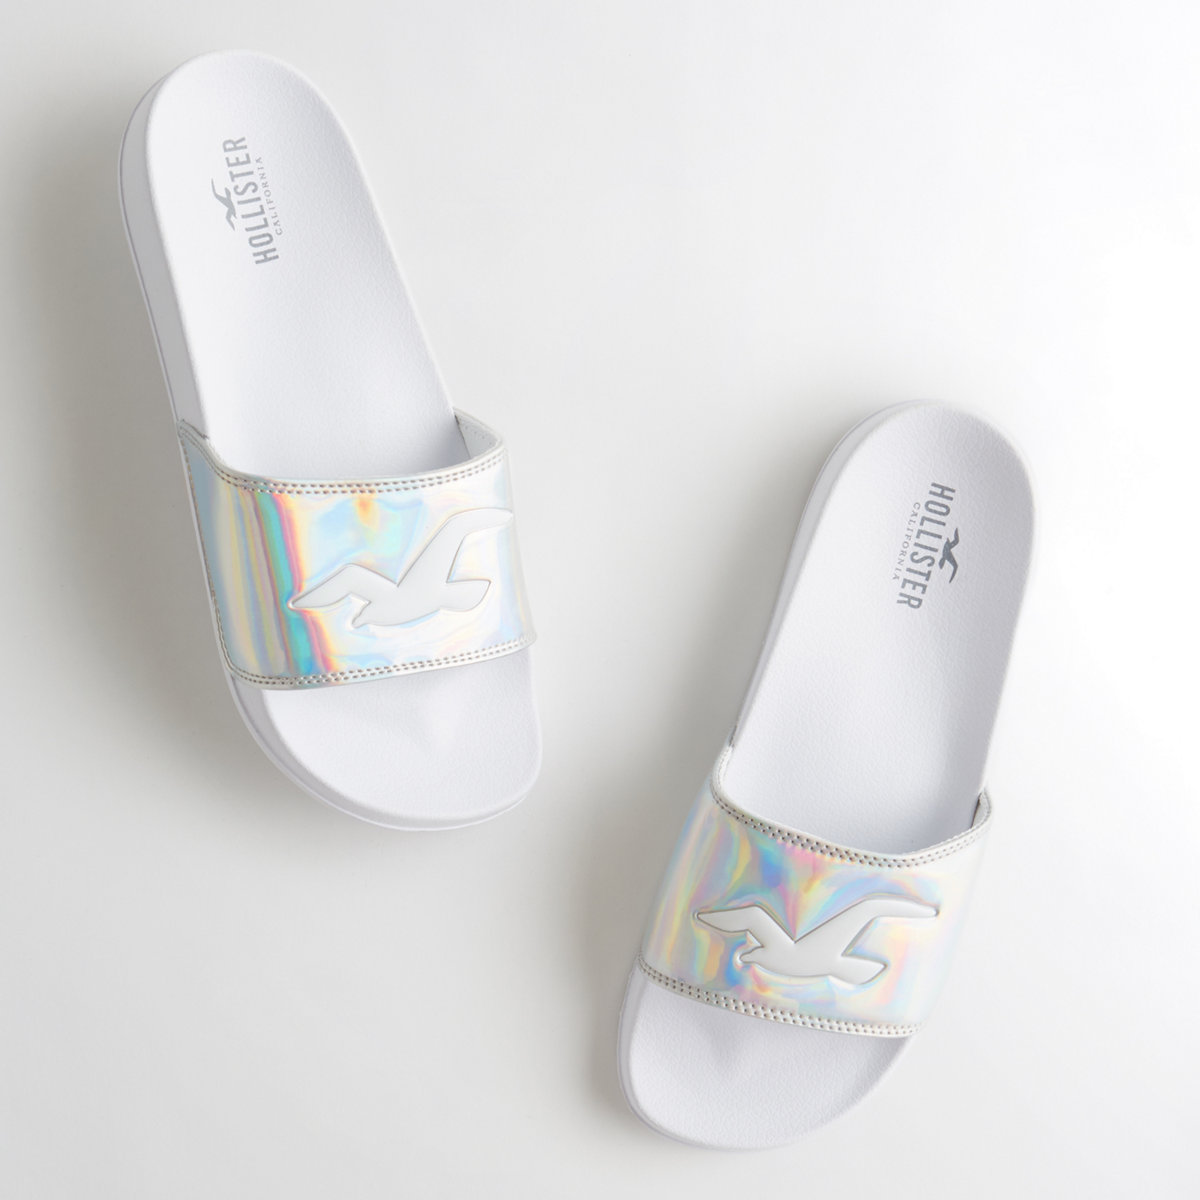 Iridescent Slide Sandals